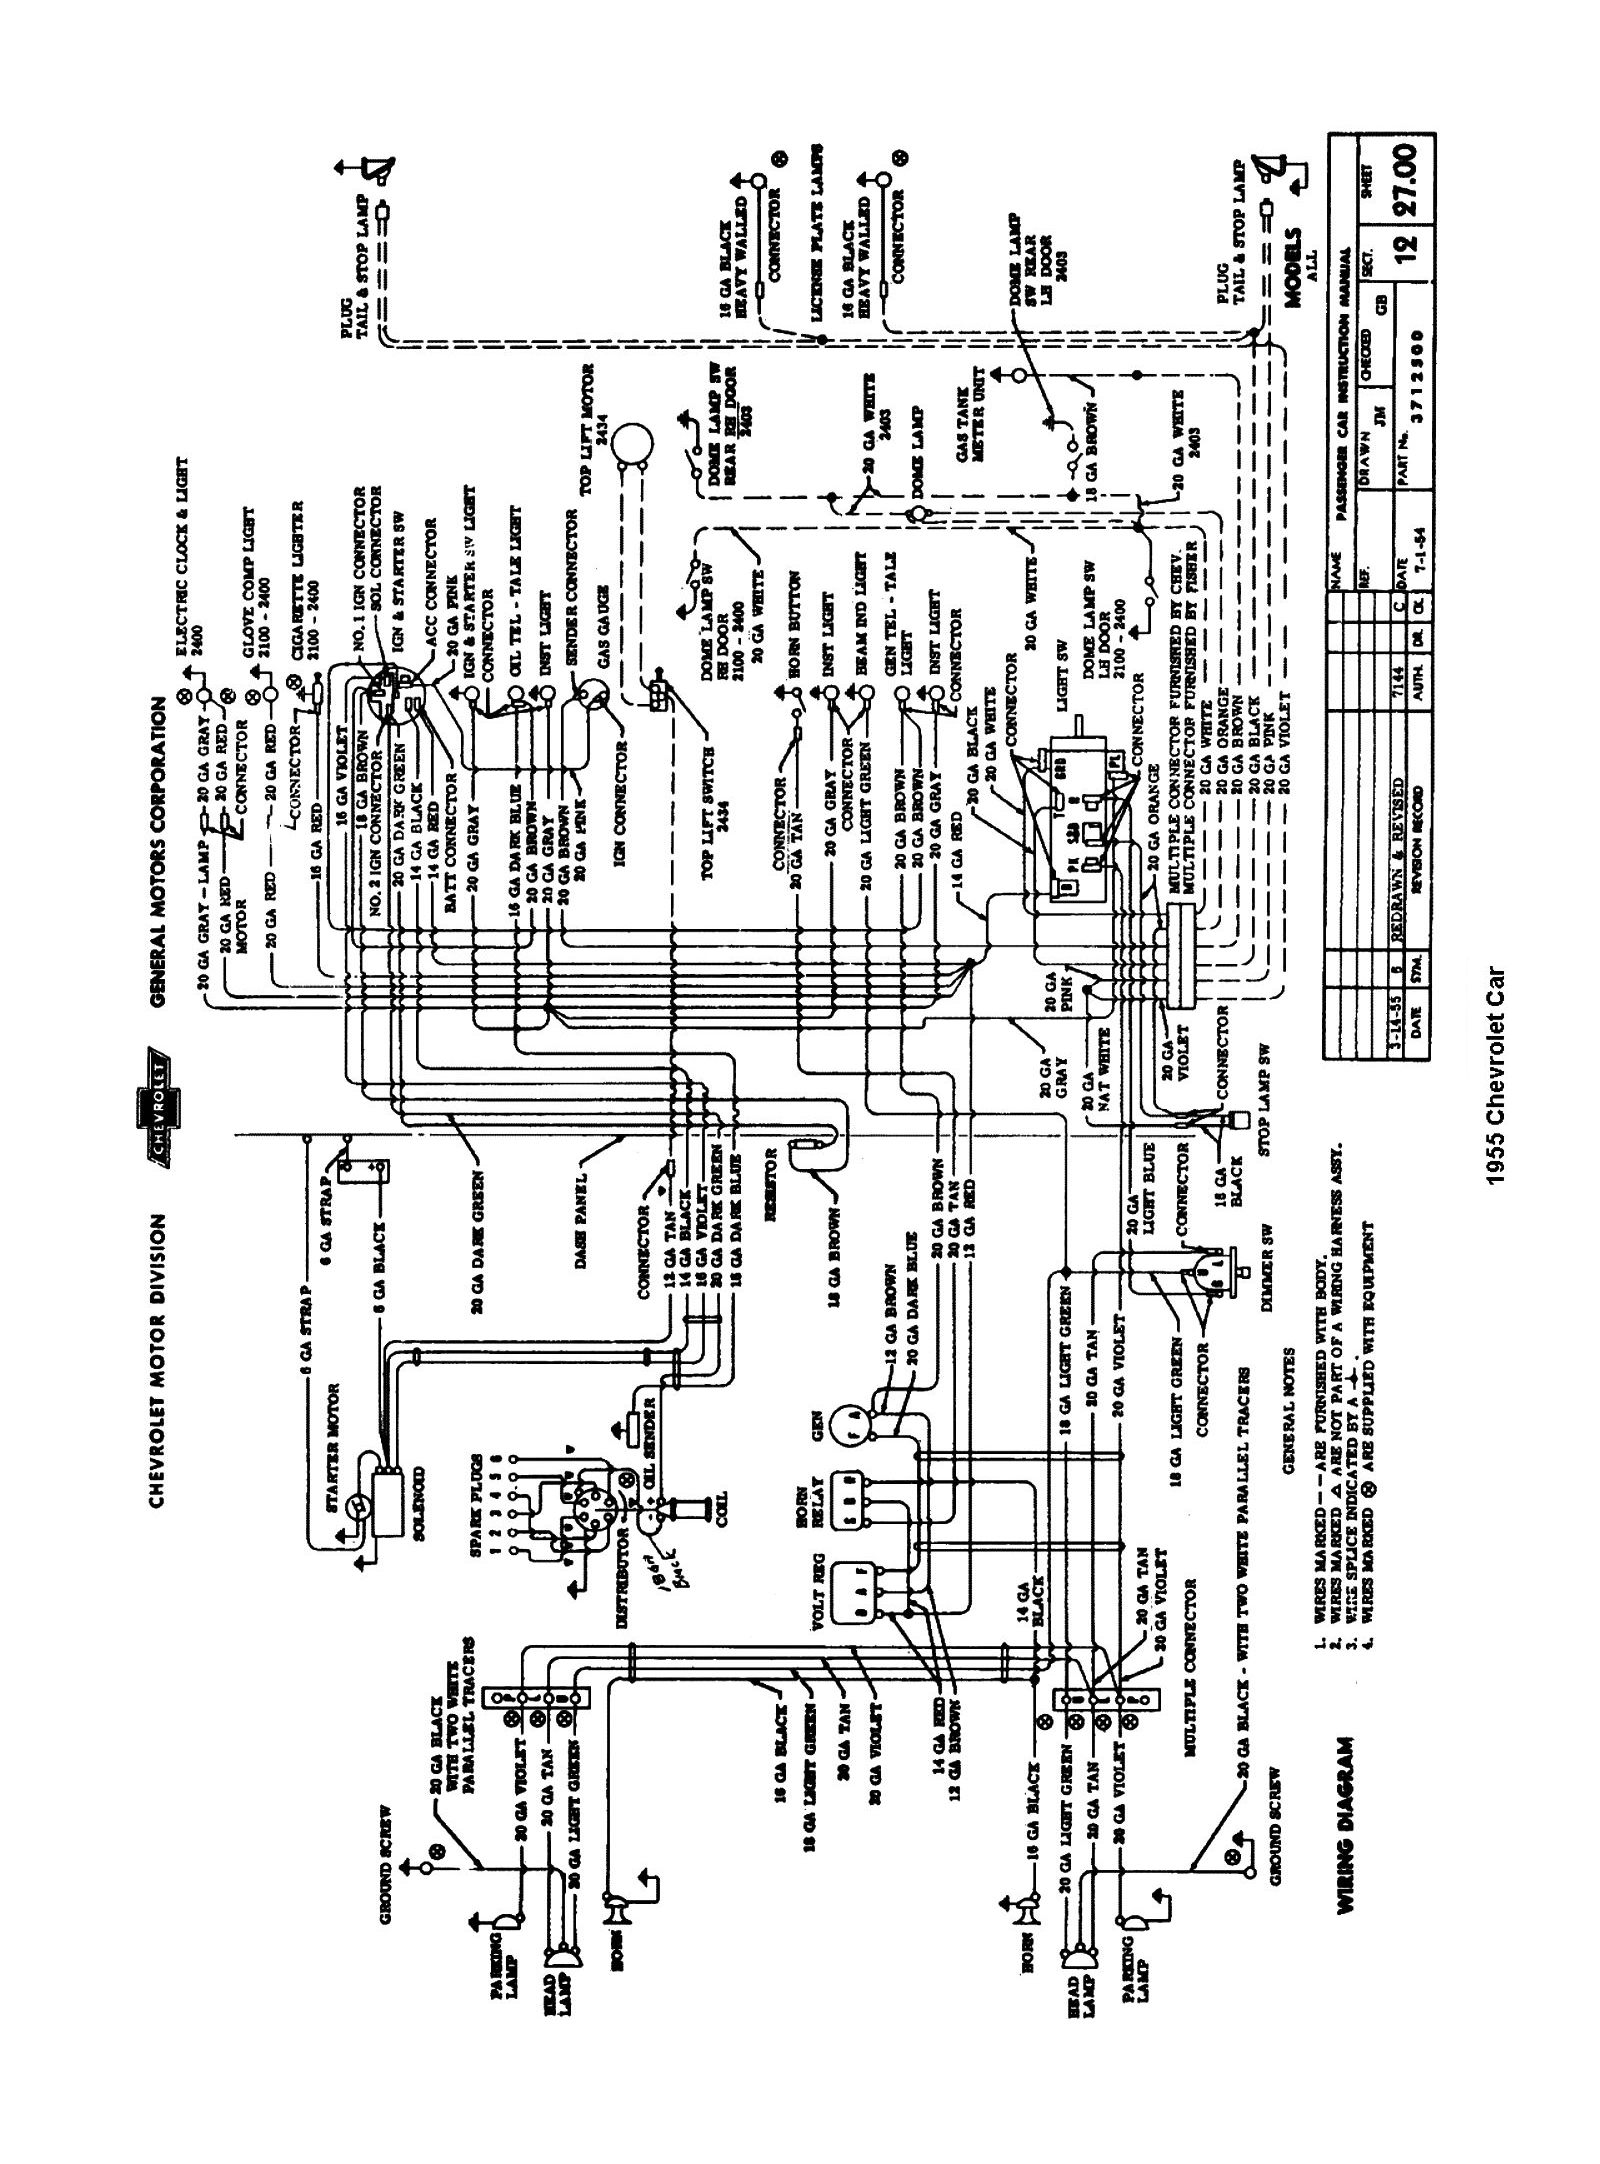 1955 Pontiac Wiring Diagram | Wiring Diagram on